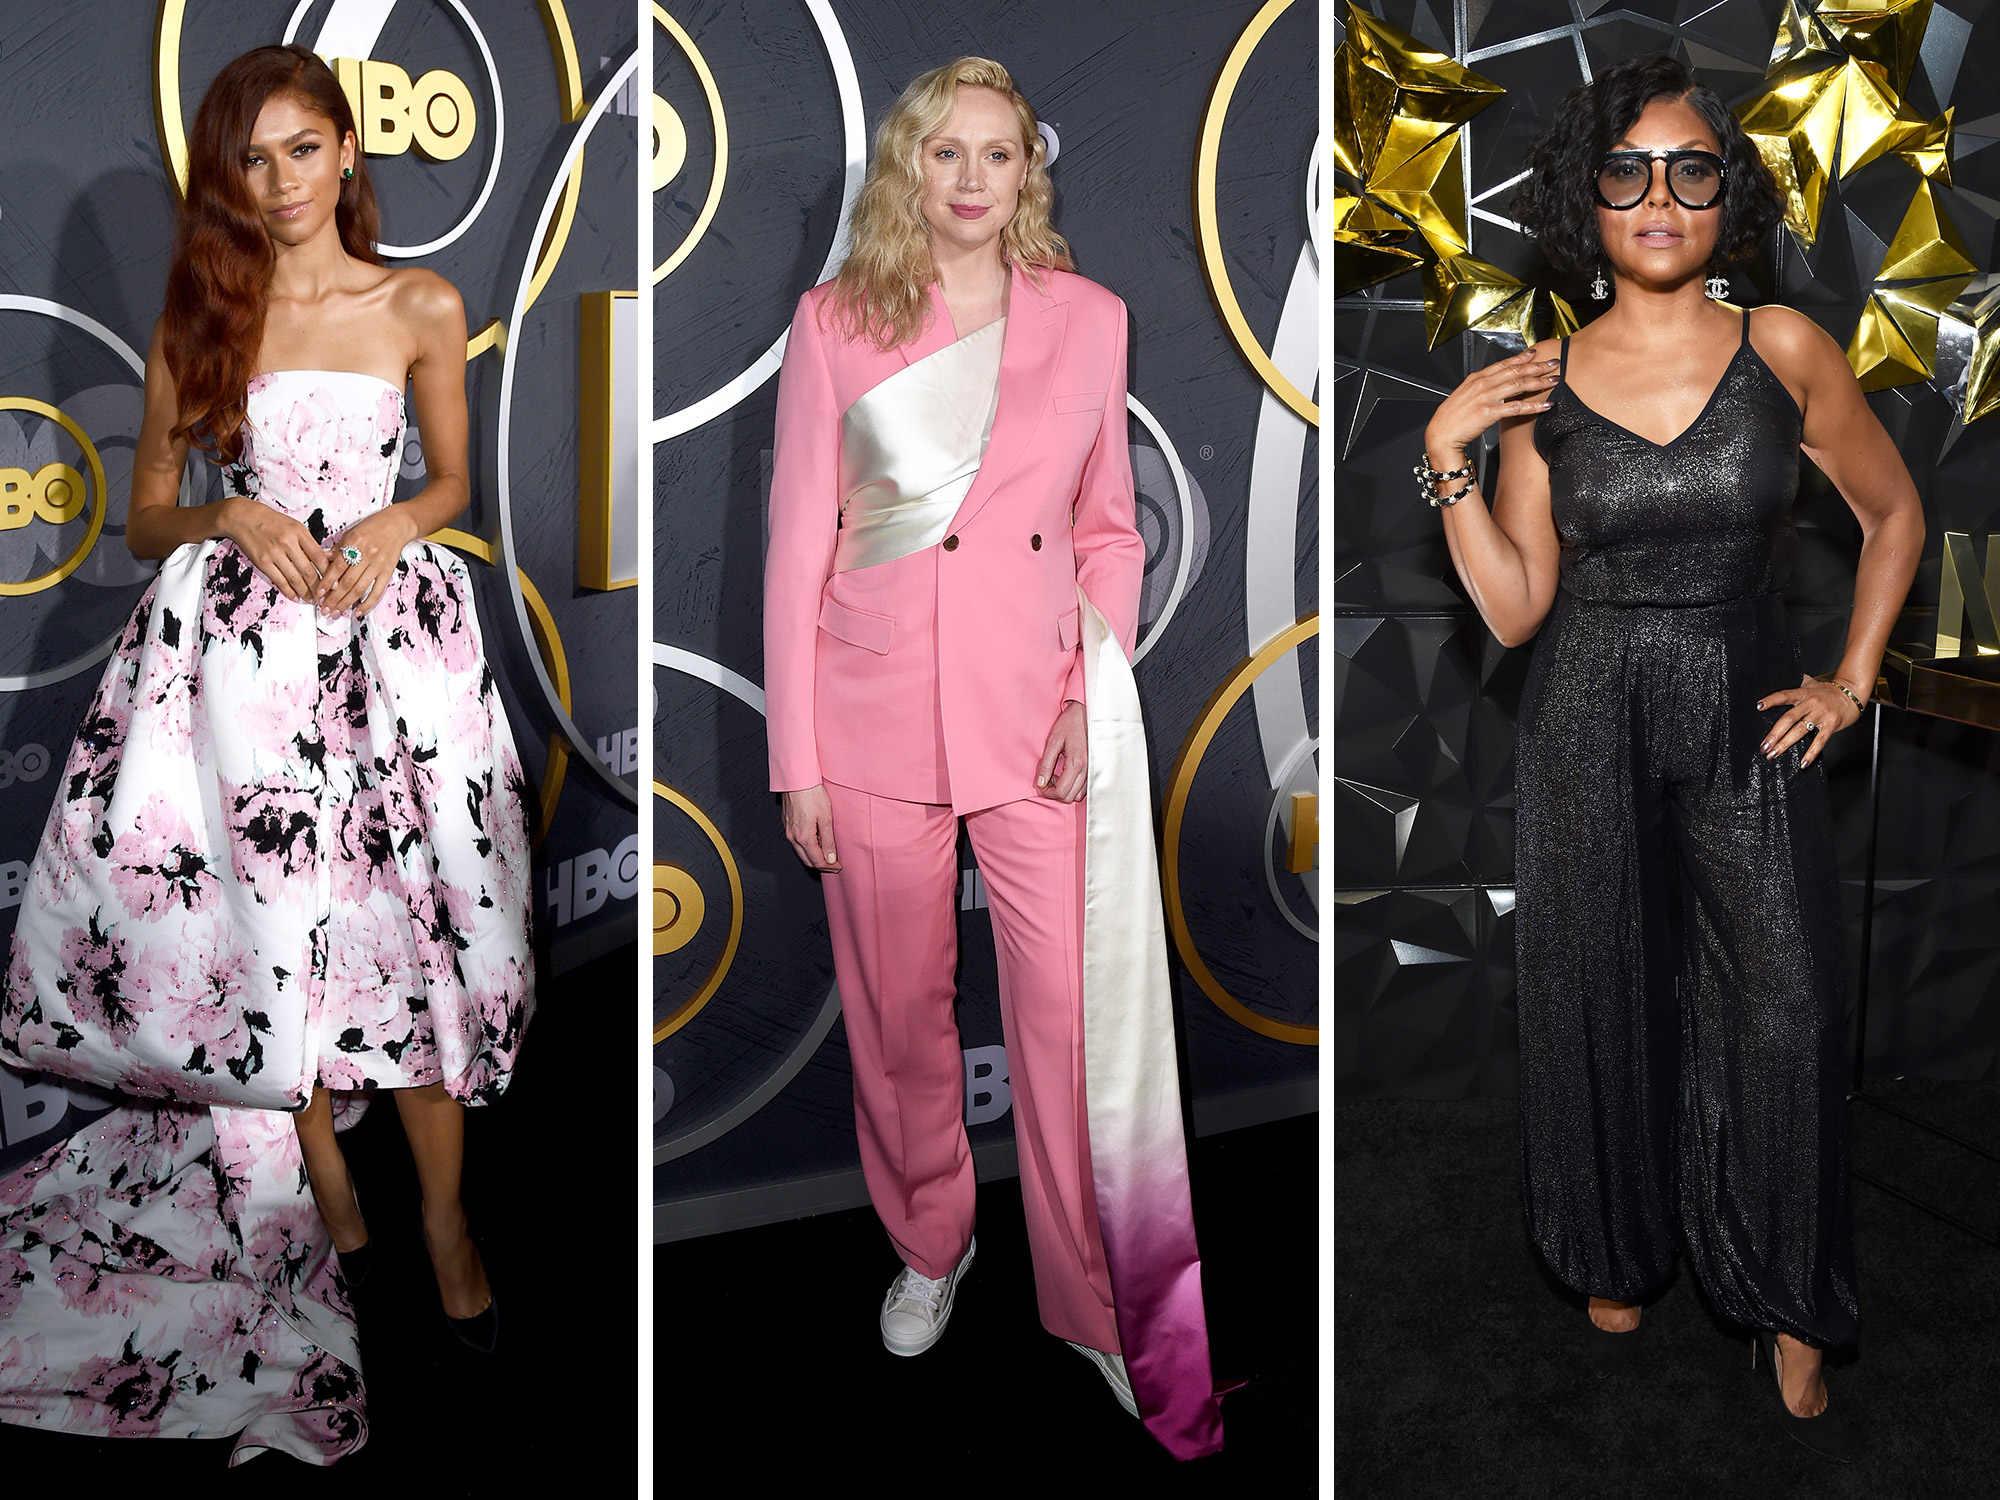 The 2019 Emmys After-Party Looks Everyone's Going to Be Talking About